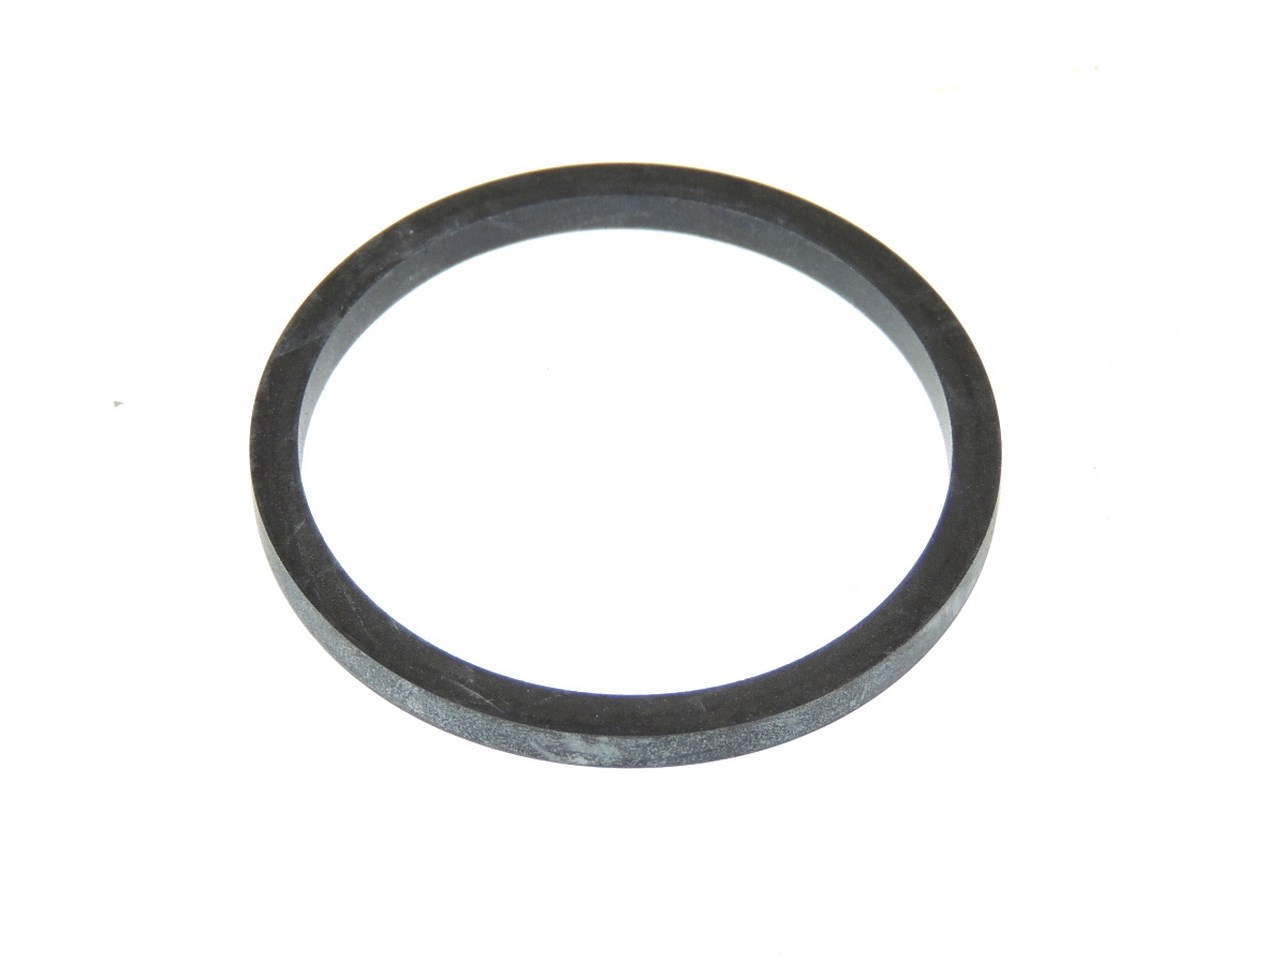 Ring of brake valve piston - sealing - Jawa 639,640